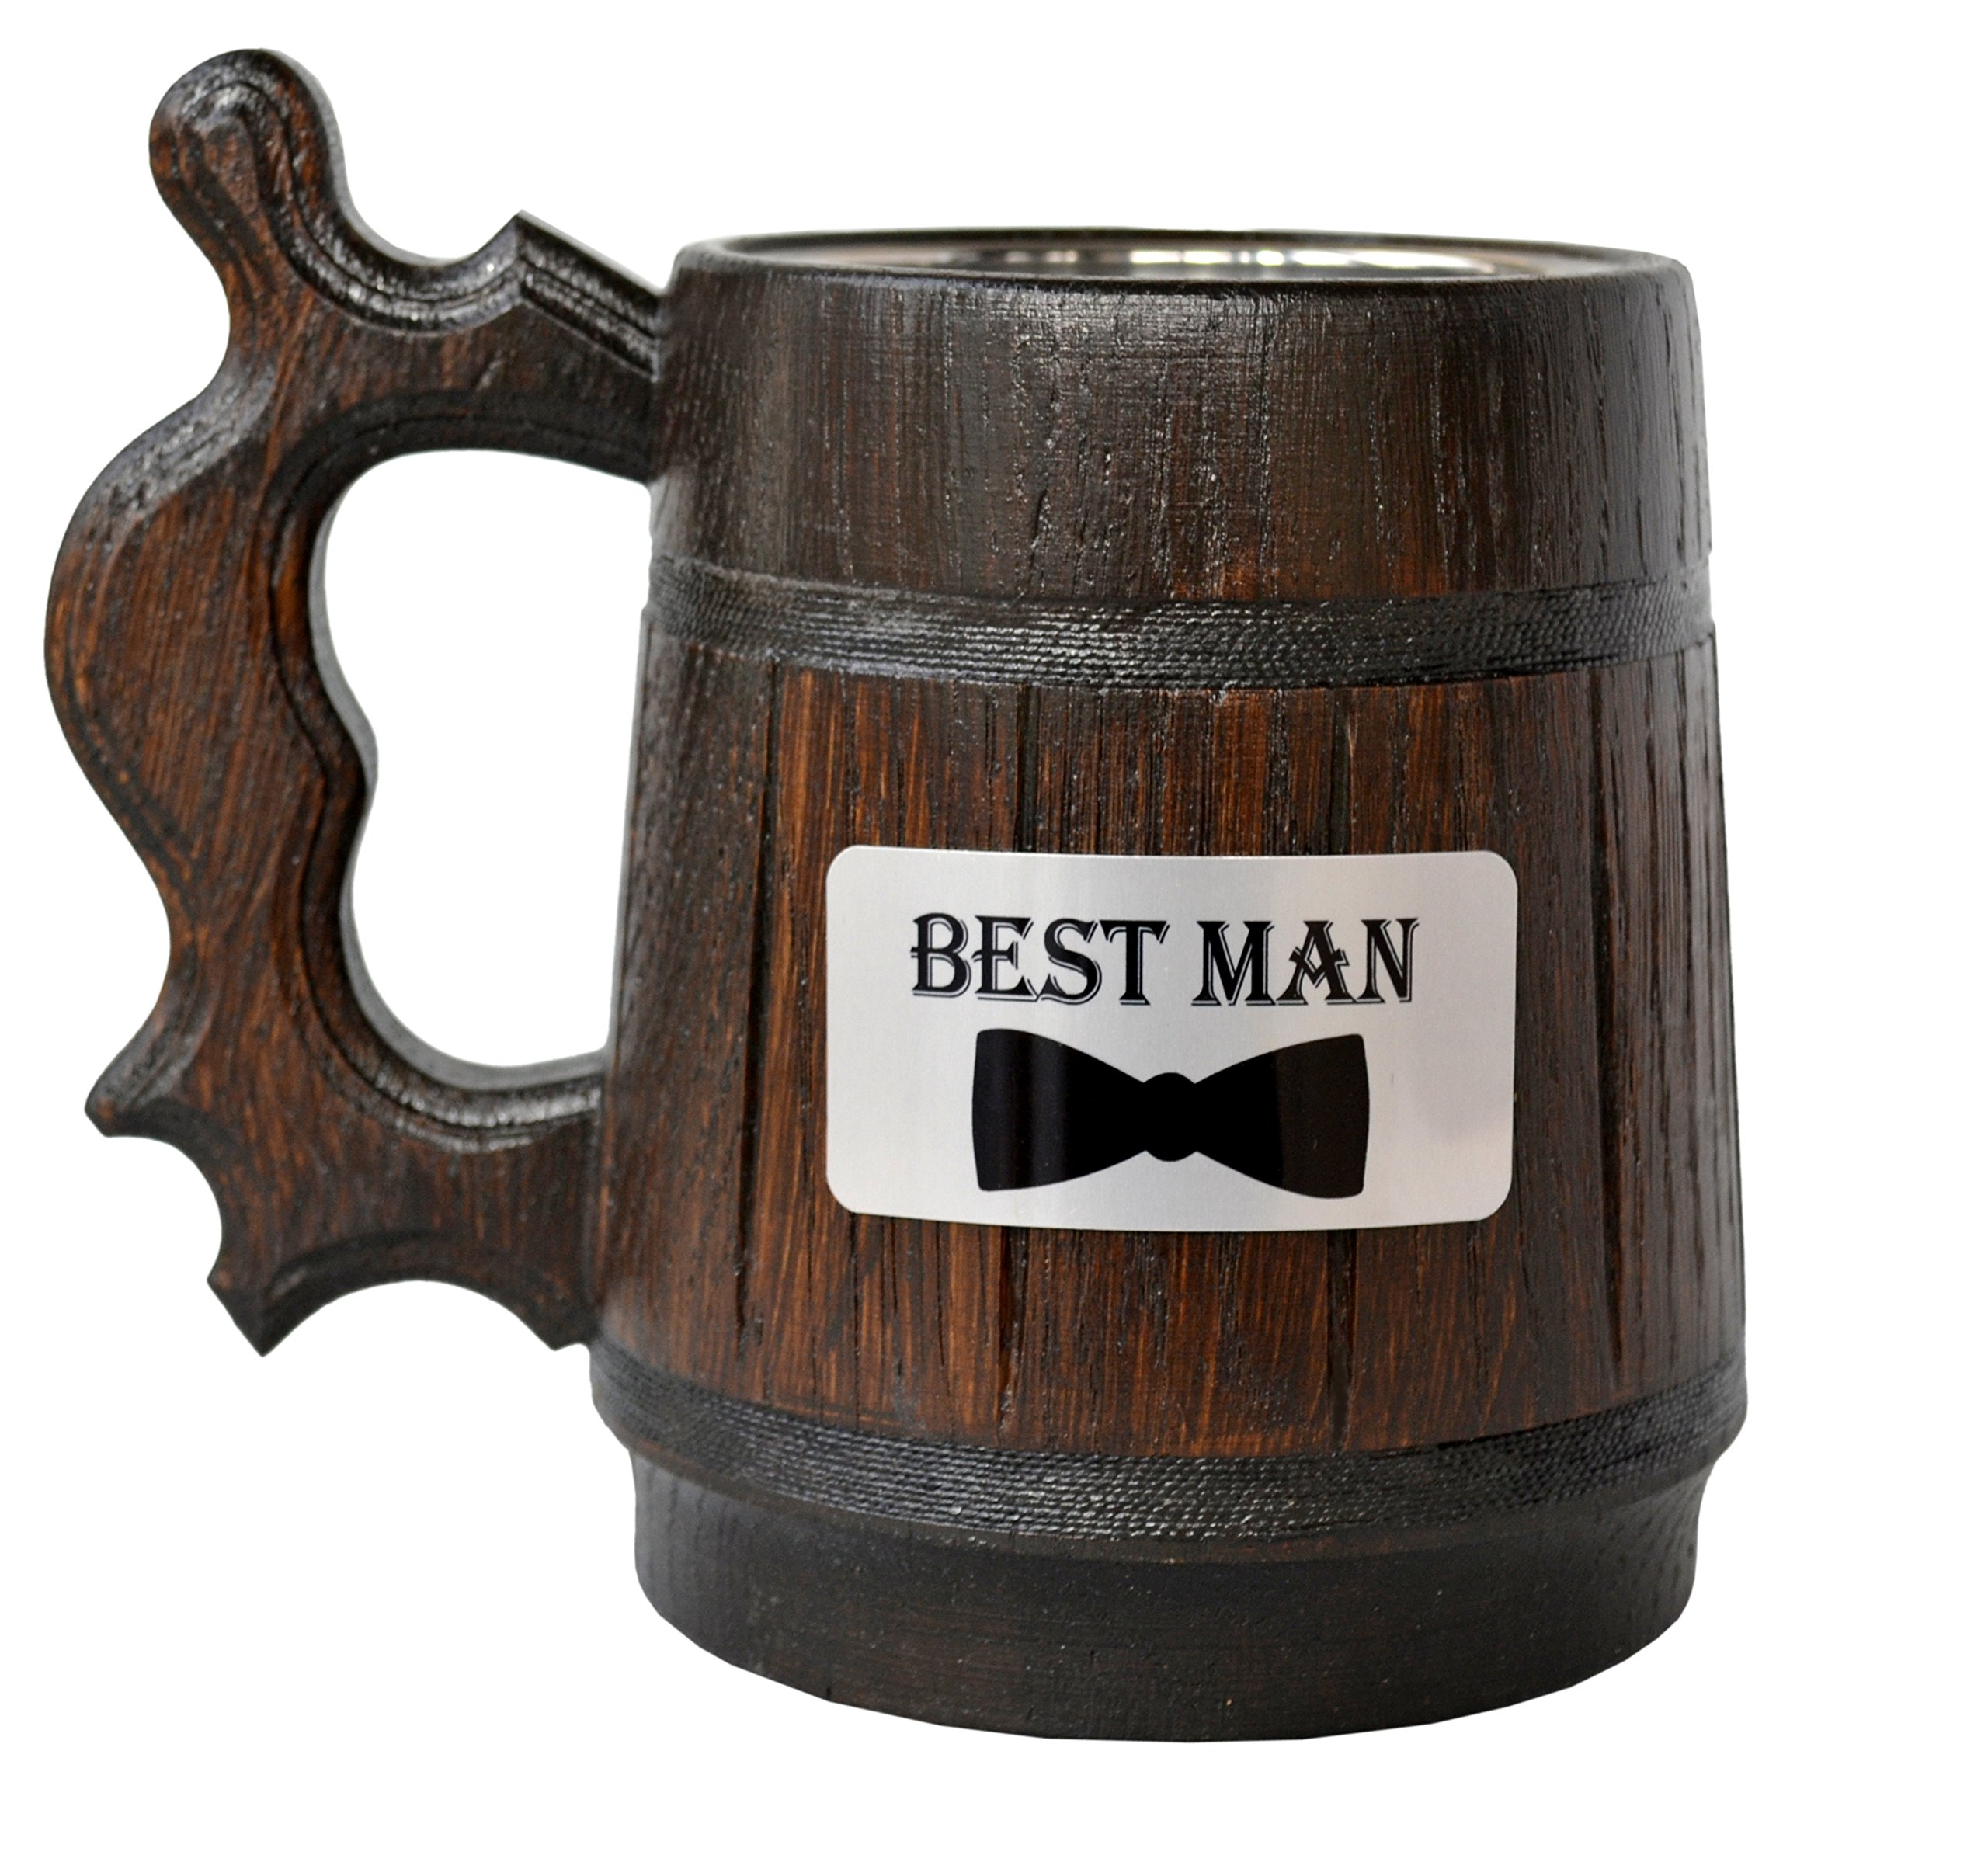 Handmade Best Man - Wood Beer - Mug NON-PERSONALIZED 0.6L 20oz Natural Stainless Steel - Cup Men - Eco-Friendly Wooden Tankard Souvenir Retro Brown